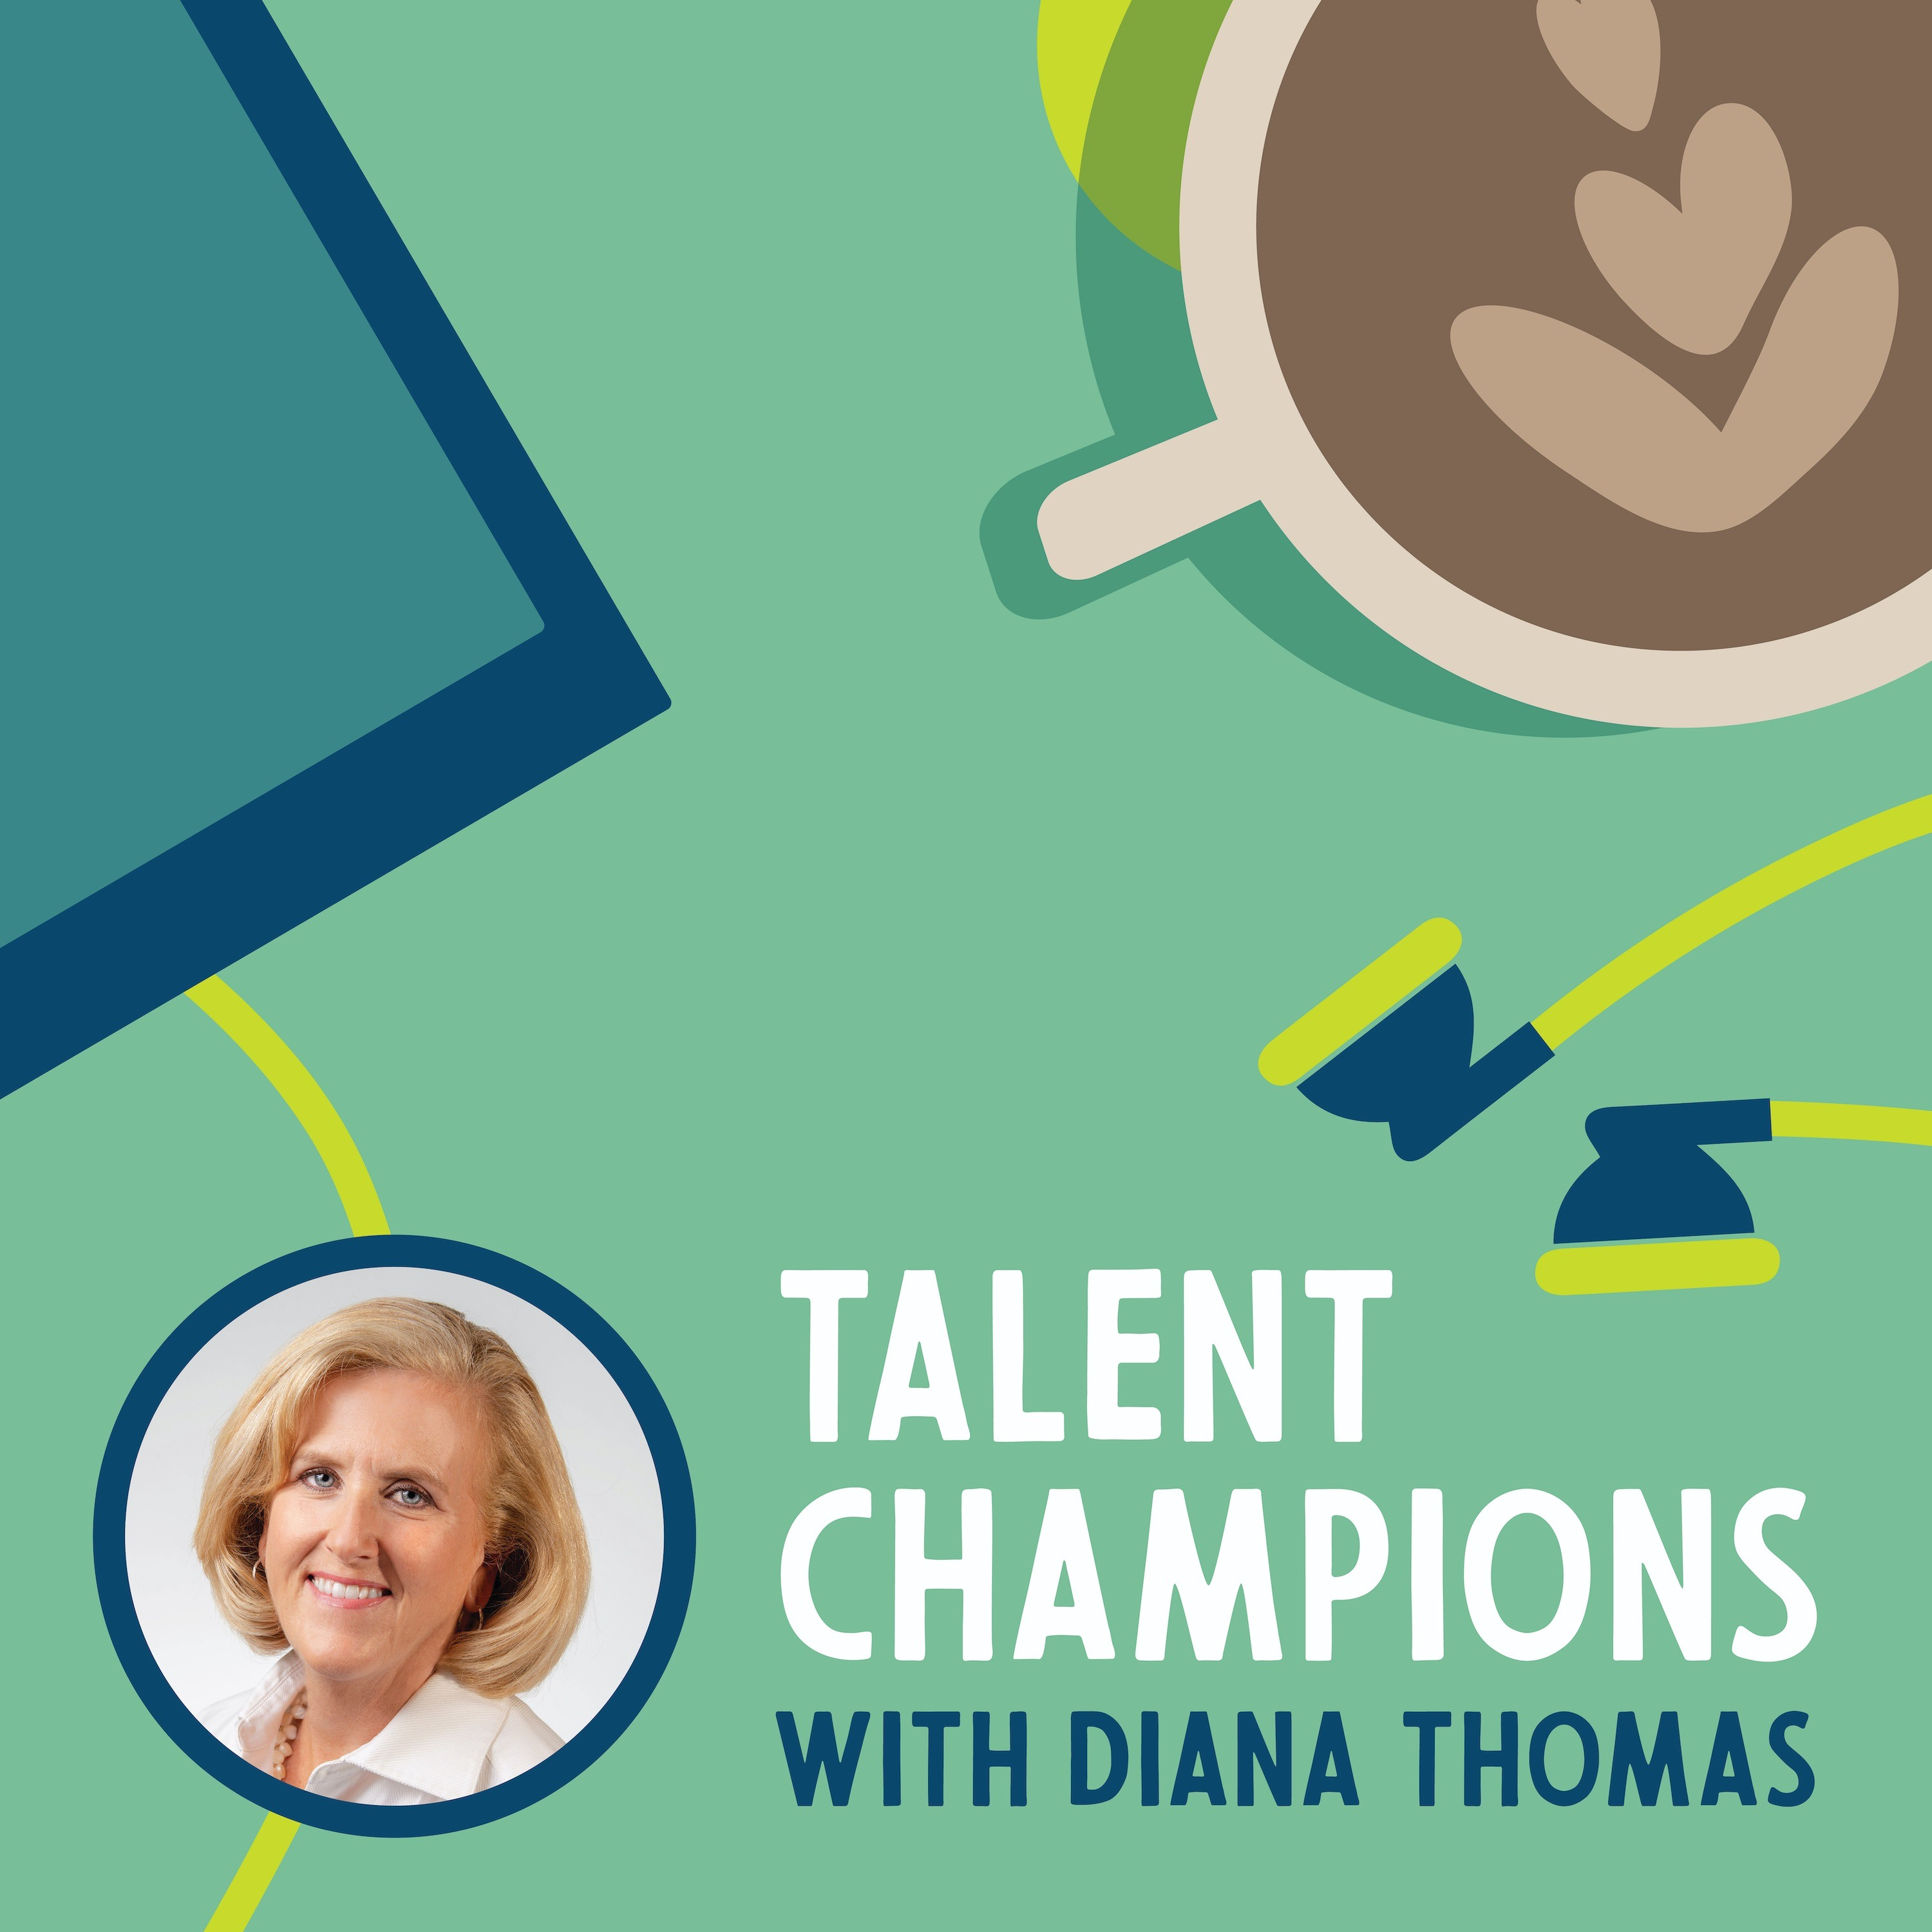 Talent Champions with Diana Thomas